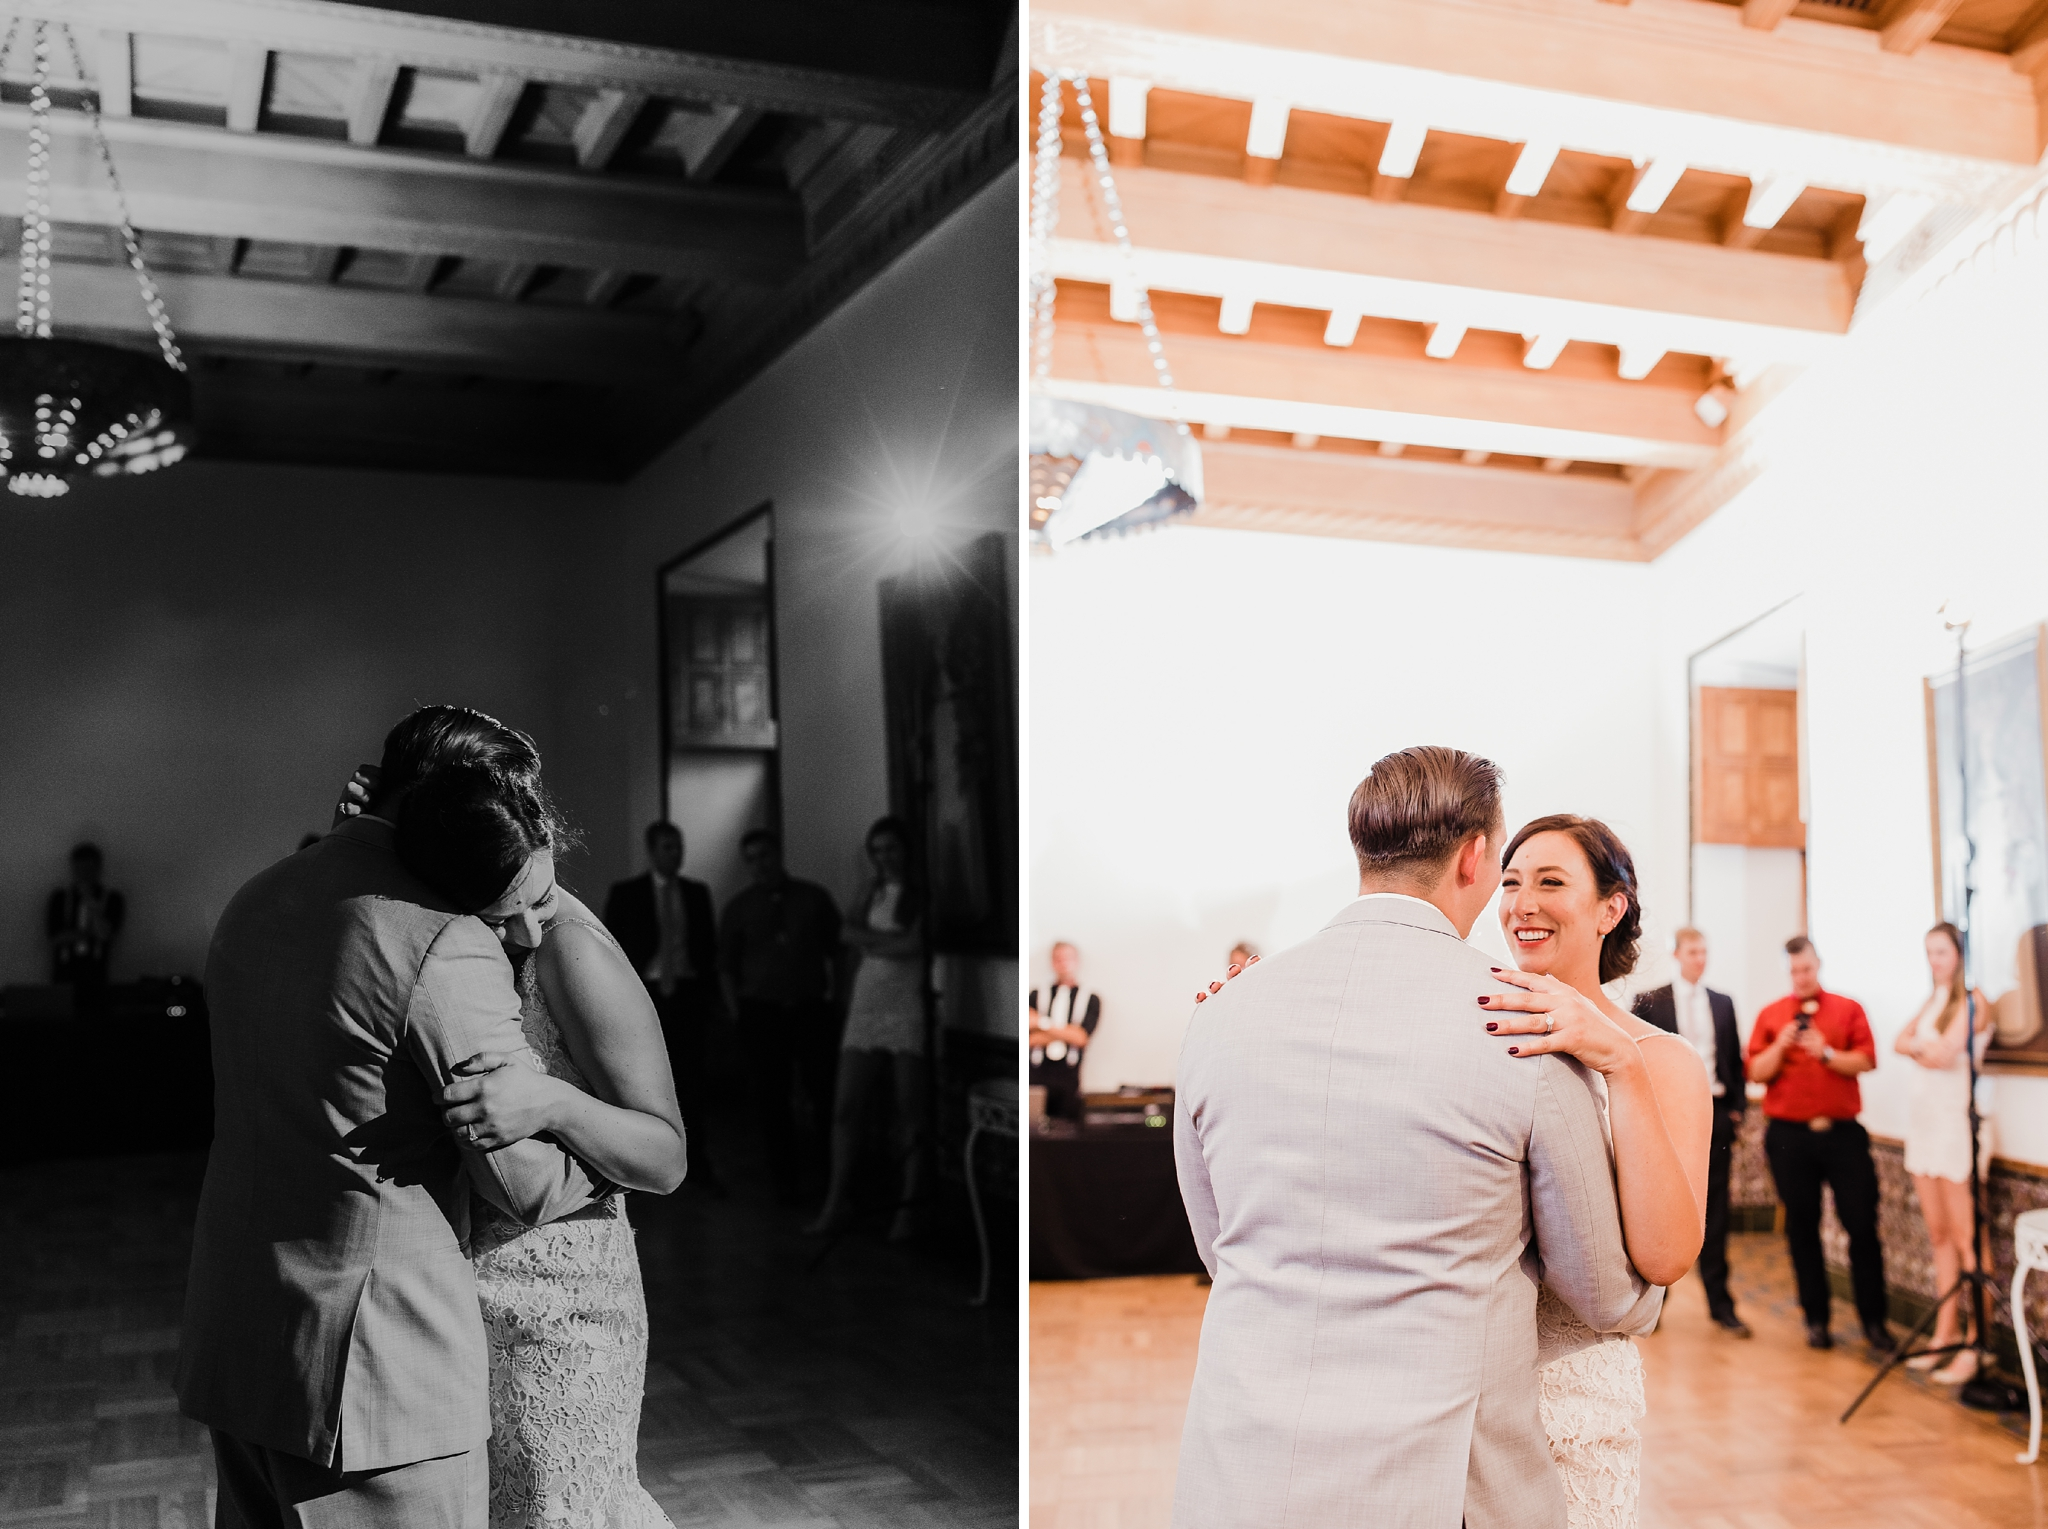 Alicia+lucia+photography+-+albuquerque+wedding+photographer+-+santa+fe+wedding+photography+-+new+mexico+wedding+photographer+-+new+mexico+wedding+-+new+mexico+wedding+-+summer+wedding+-+los+poblanos+wedding+-+colorado+bride_0119.jpg